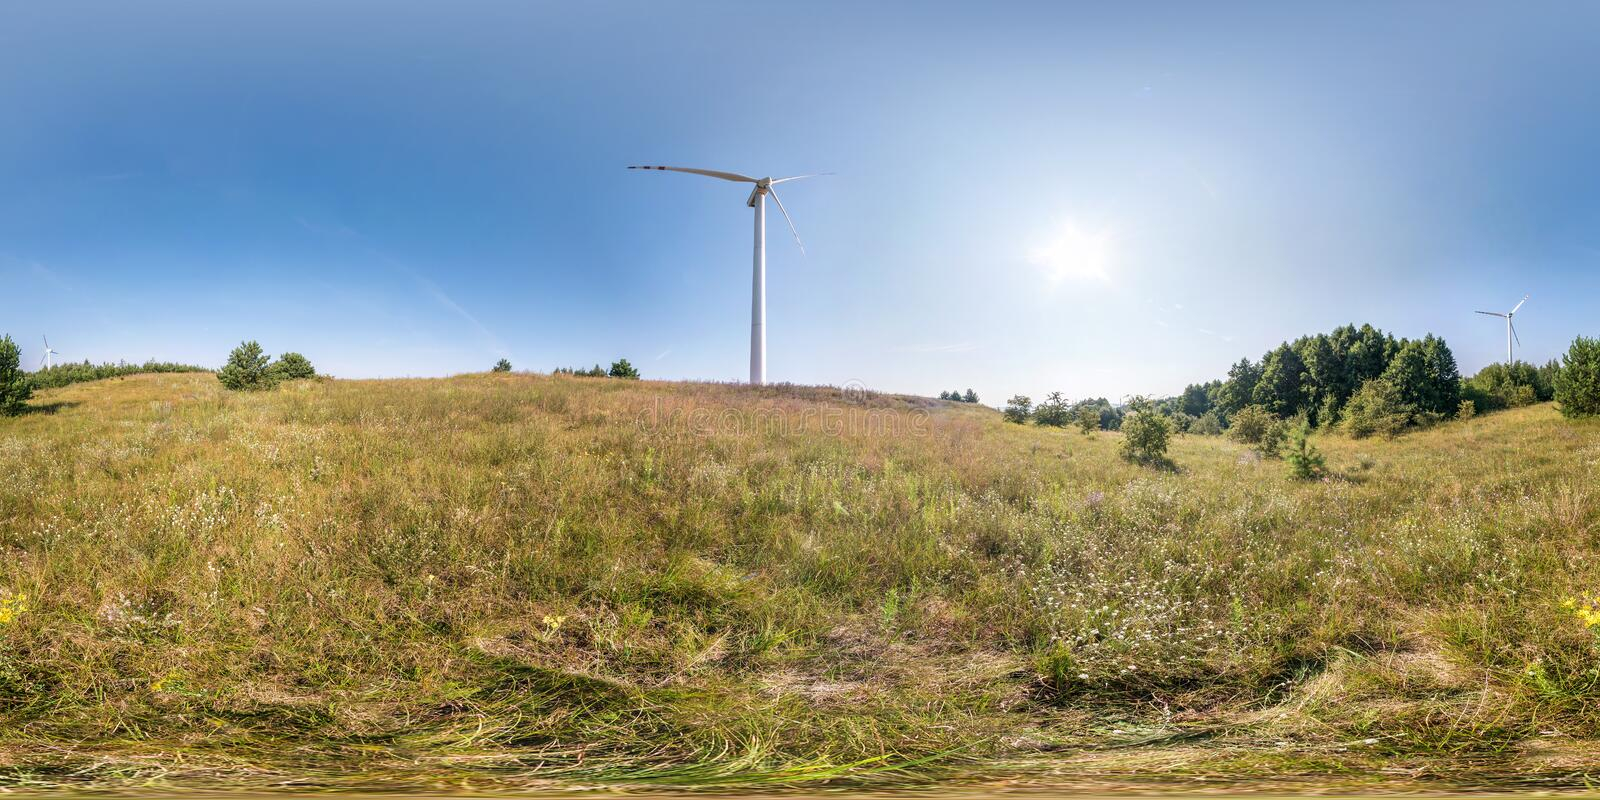 Full seamless spherical hdri panorama 360 degrees angle view near windmill propeller in equirectangular projection, VR AR virtual. Reality content. Wind power royalty free stock photos